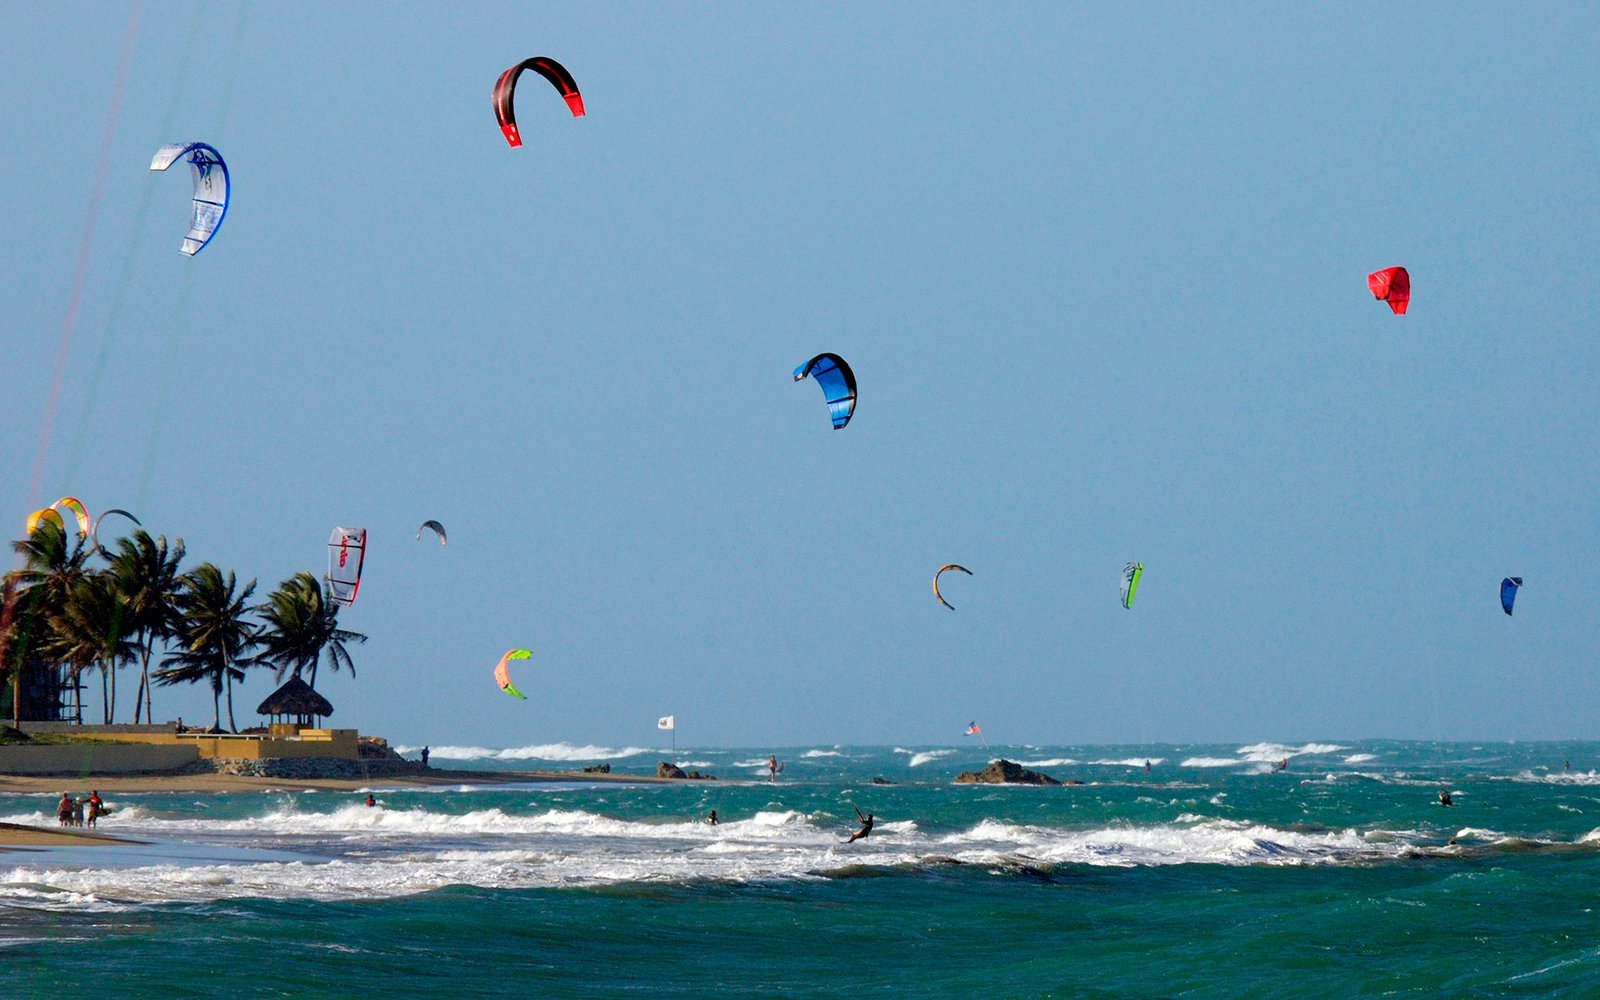 Dominican Republic, Cabarete, Windsurf And Kitesurf (Photo by Marka/UIG via Getty Images)